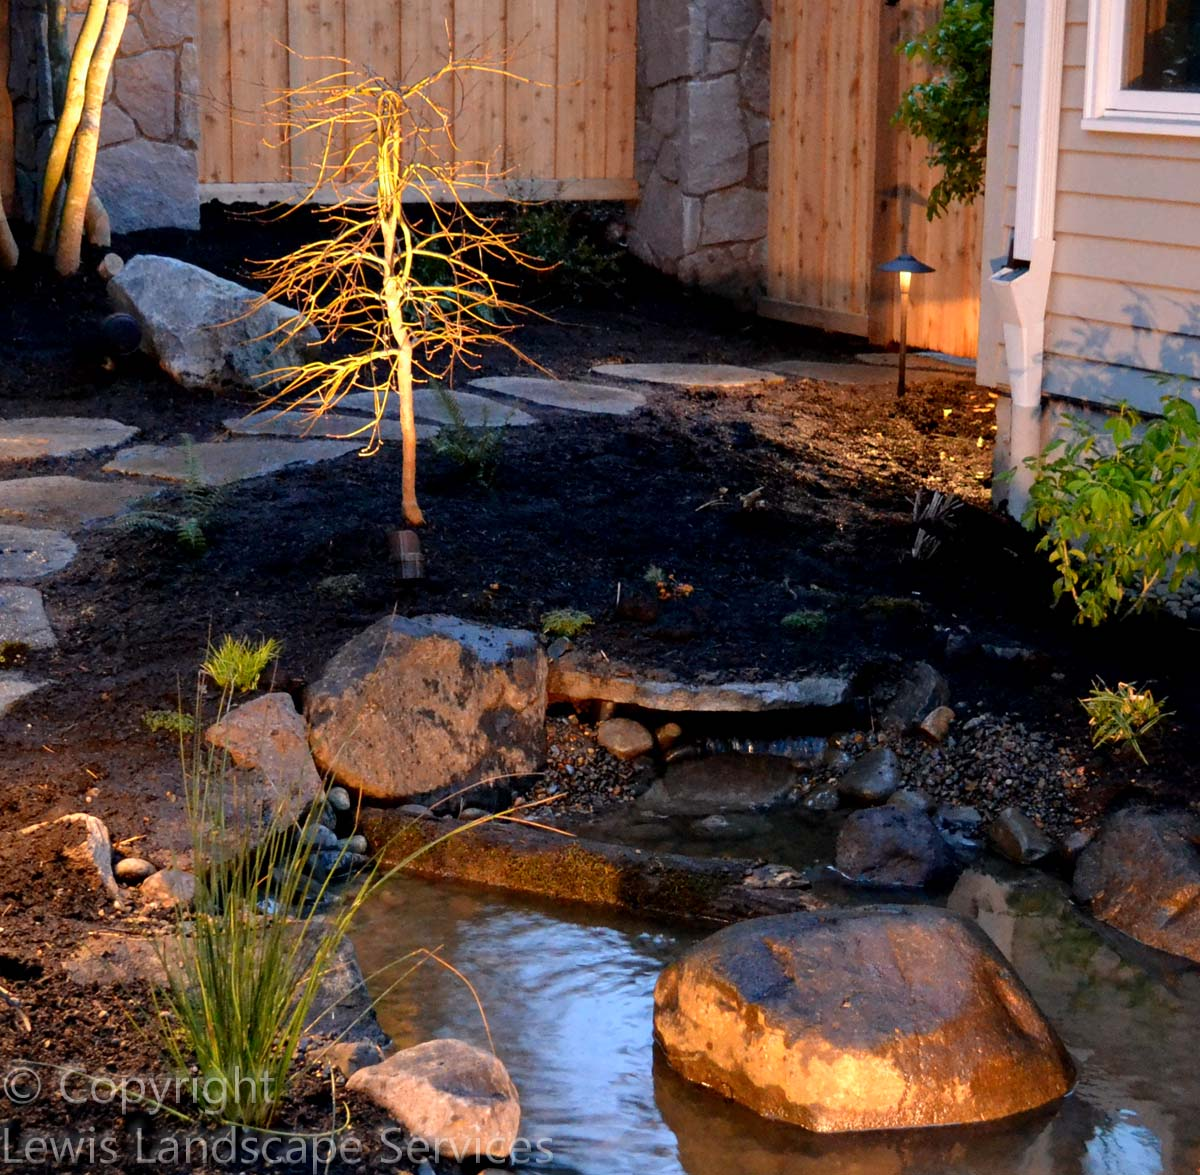 Outdoor-landscape-architectural-lighting-hall-project-winter-1213 005